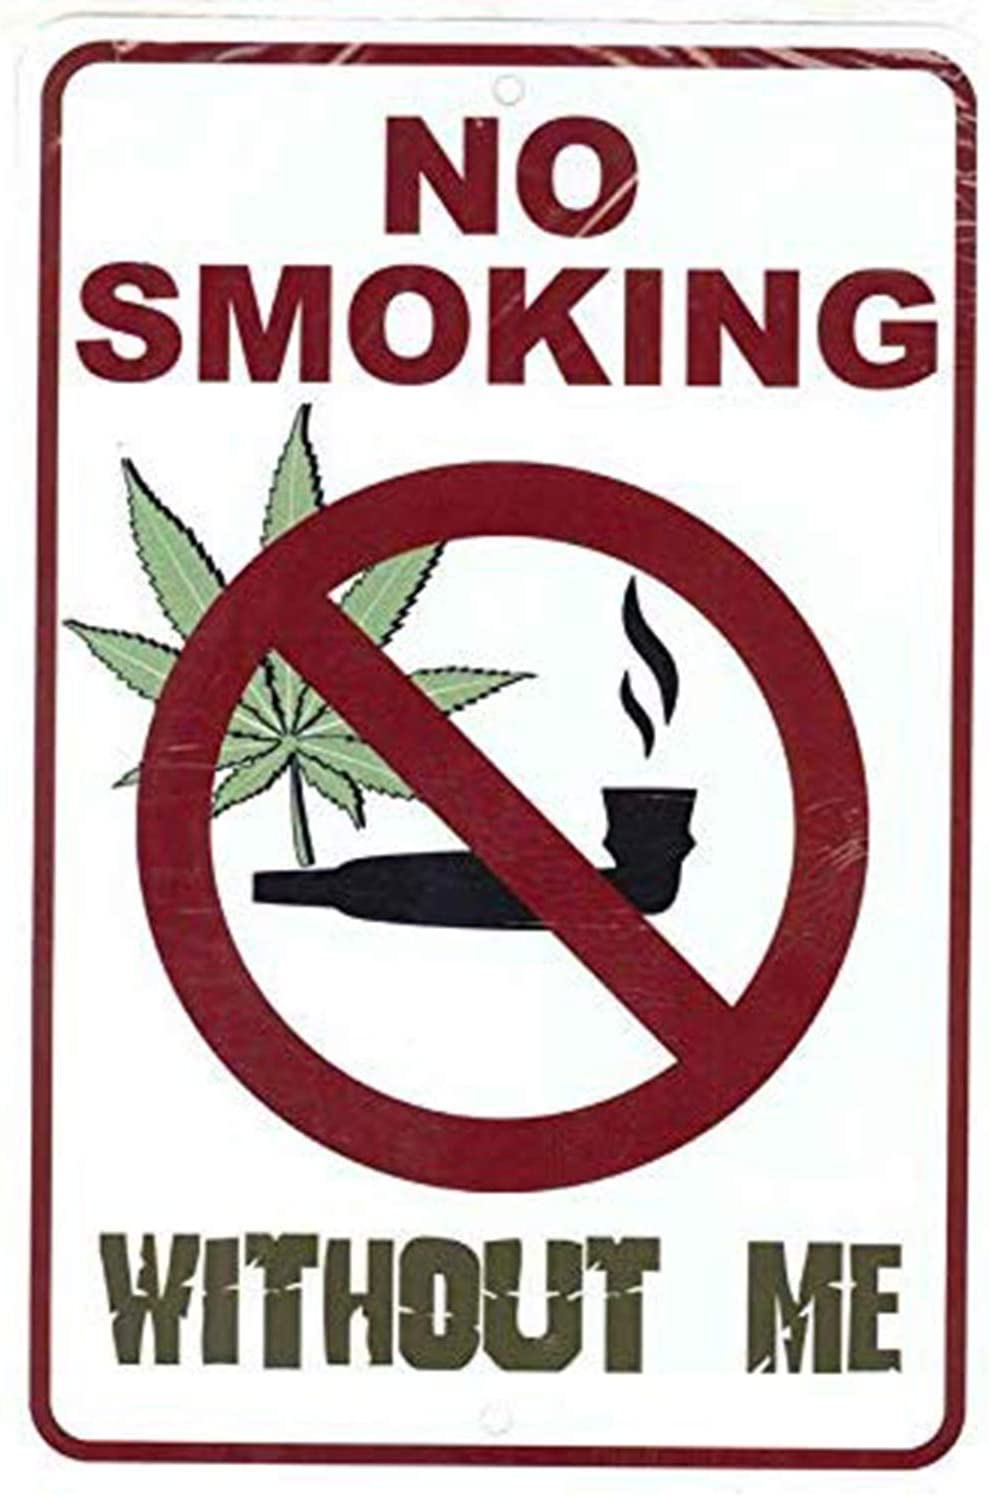 BESTWD No Smoking Without Me - Weed Marijuana Cannabis Funny Metal Sign for Your Garage Decor, Man cave Ideas, Yard Stuff or Wall